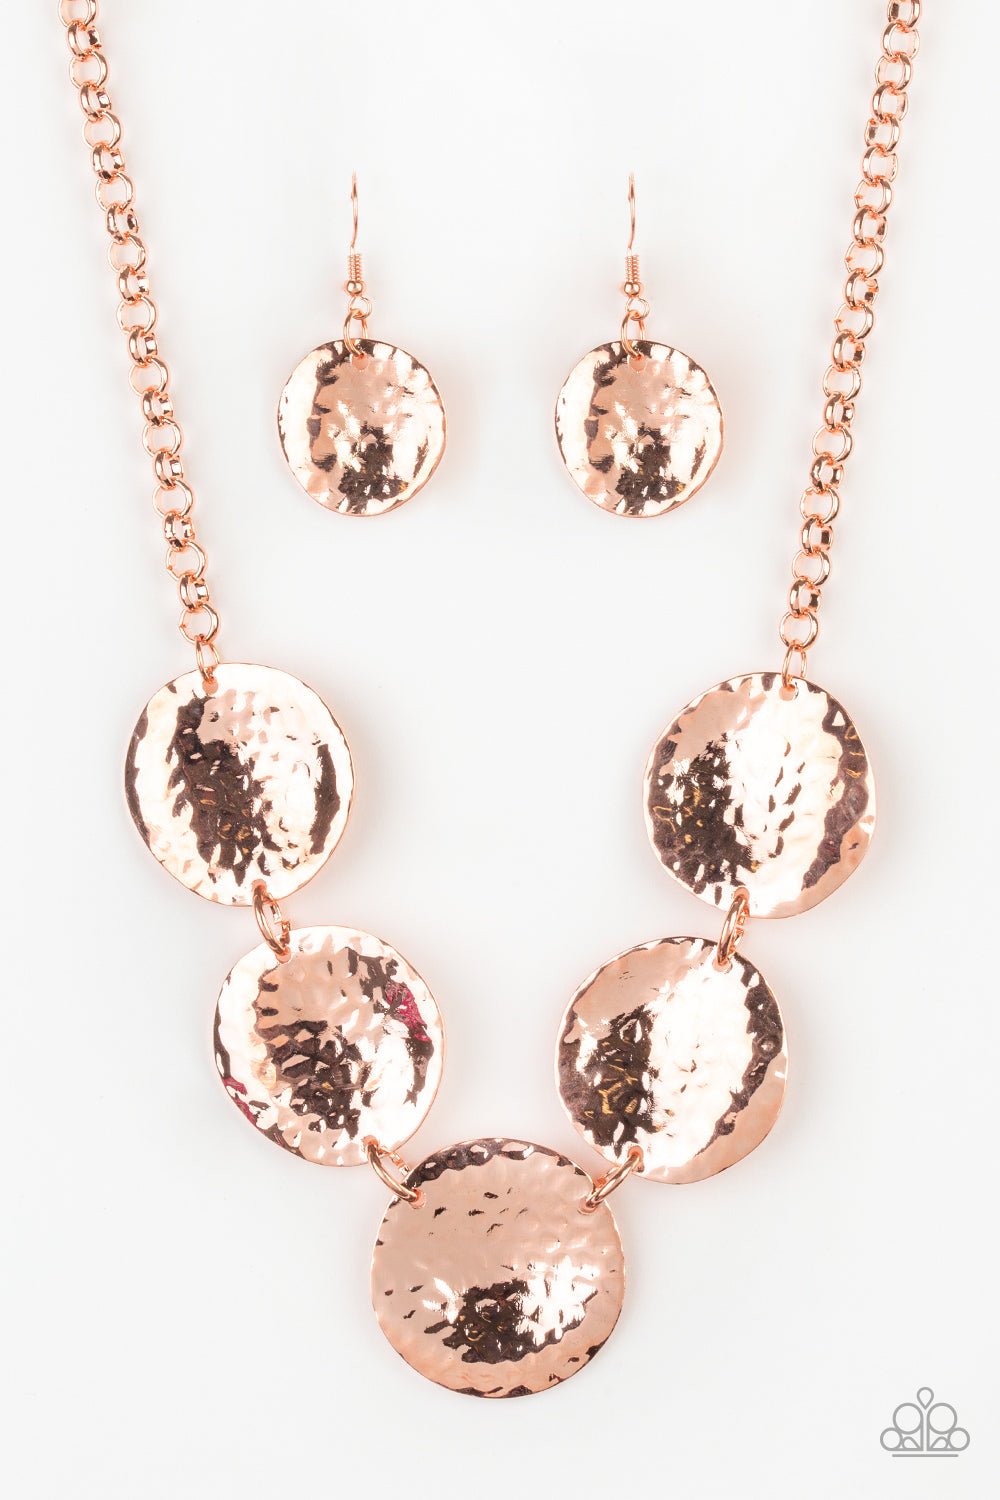 five-dollar-jewelry-first-impressions-copper-necklace-paparazzi-accessories